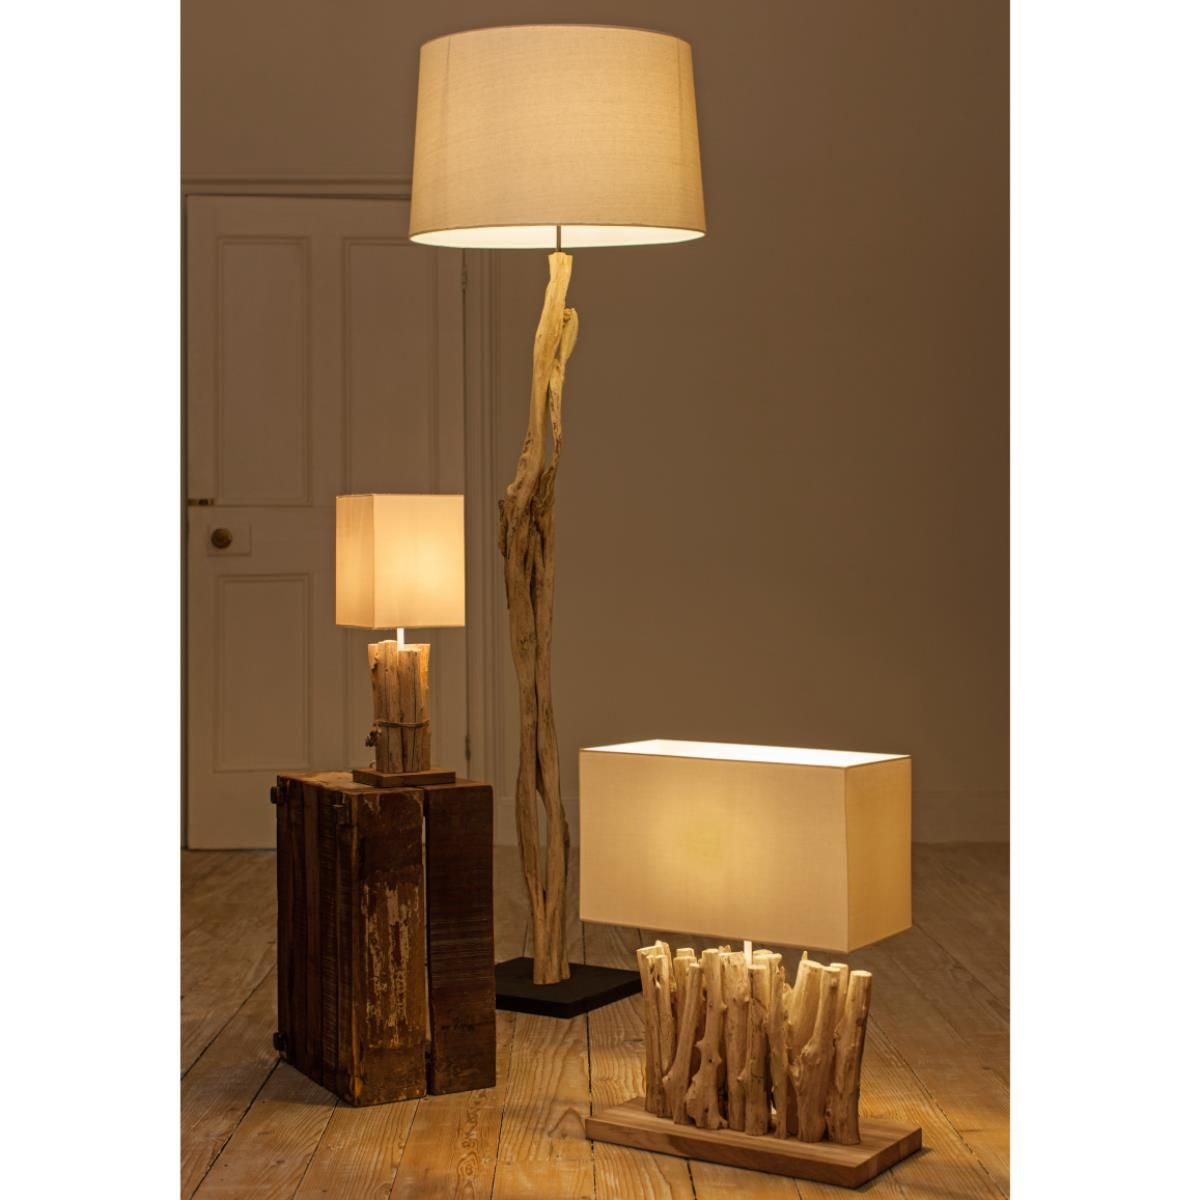 Isra driftwood floor lamp home vintage and floors mozeypictures Images